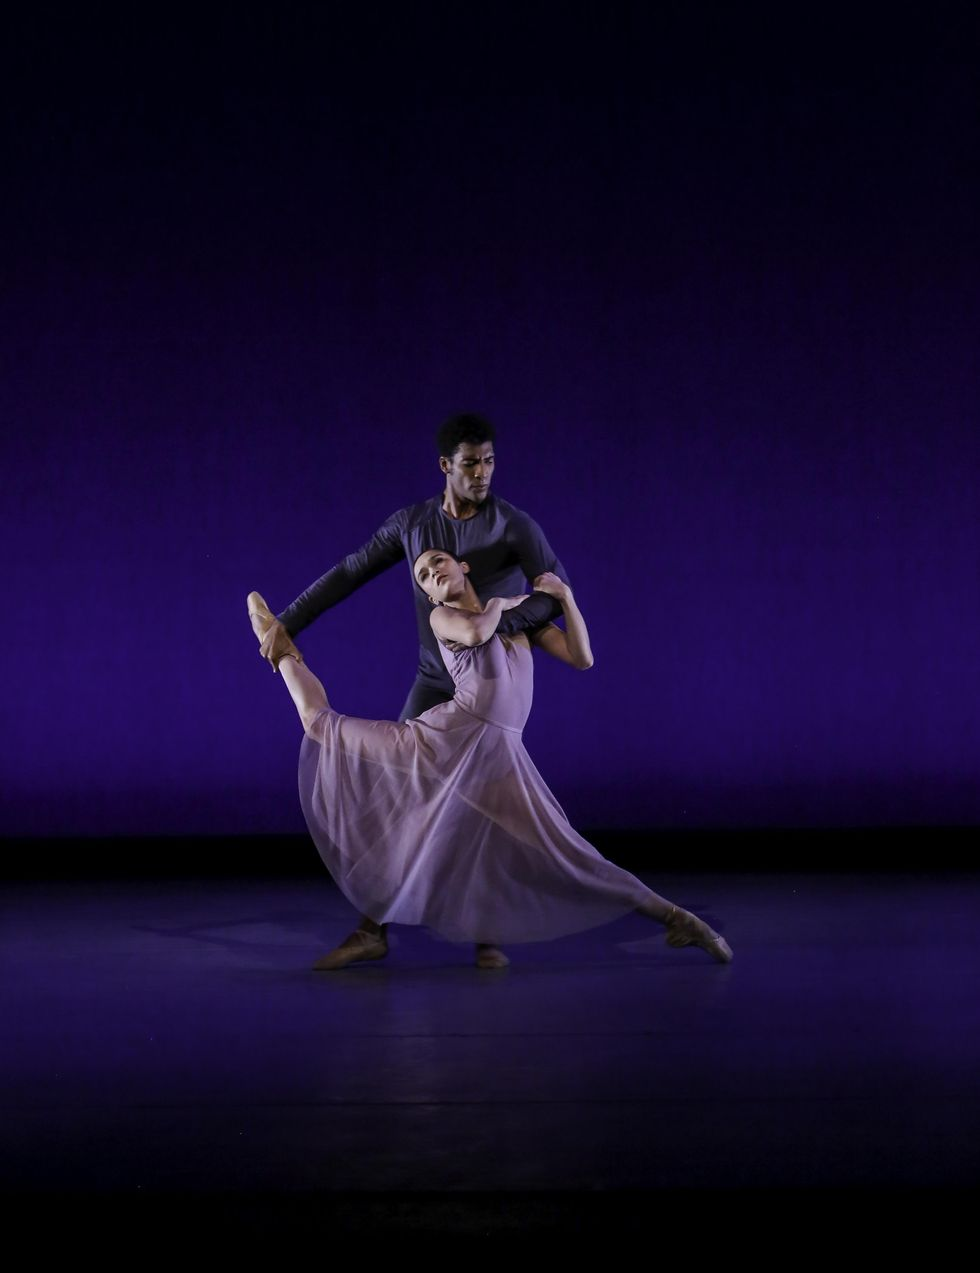 5 Pro Dancers Reflect on Their Pandemic Silver Linings